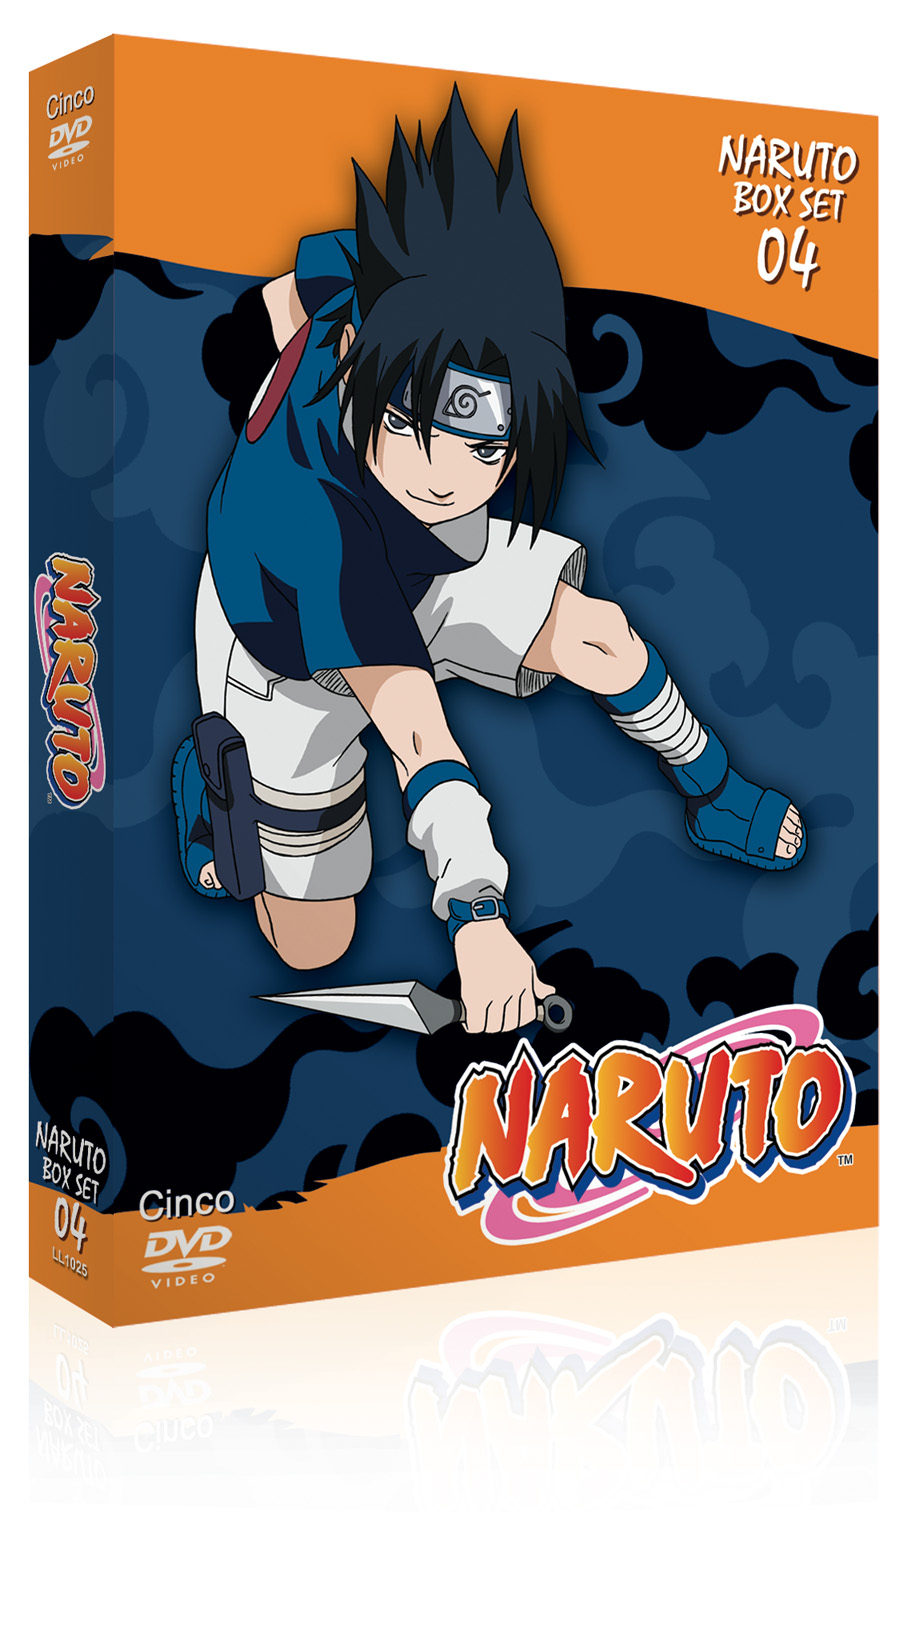 Naruto Box Set